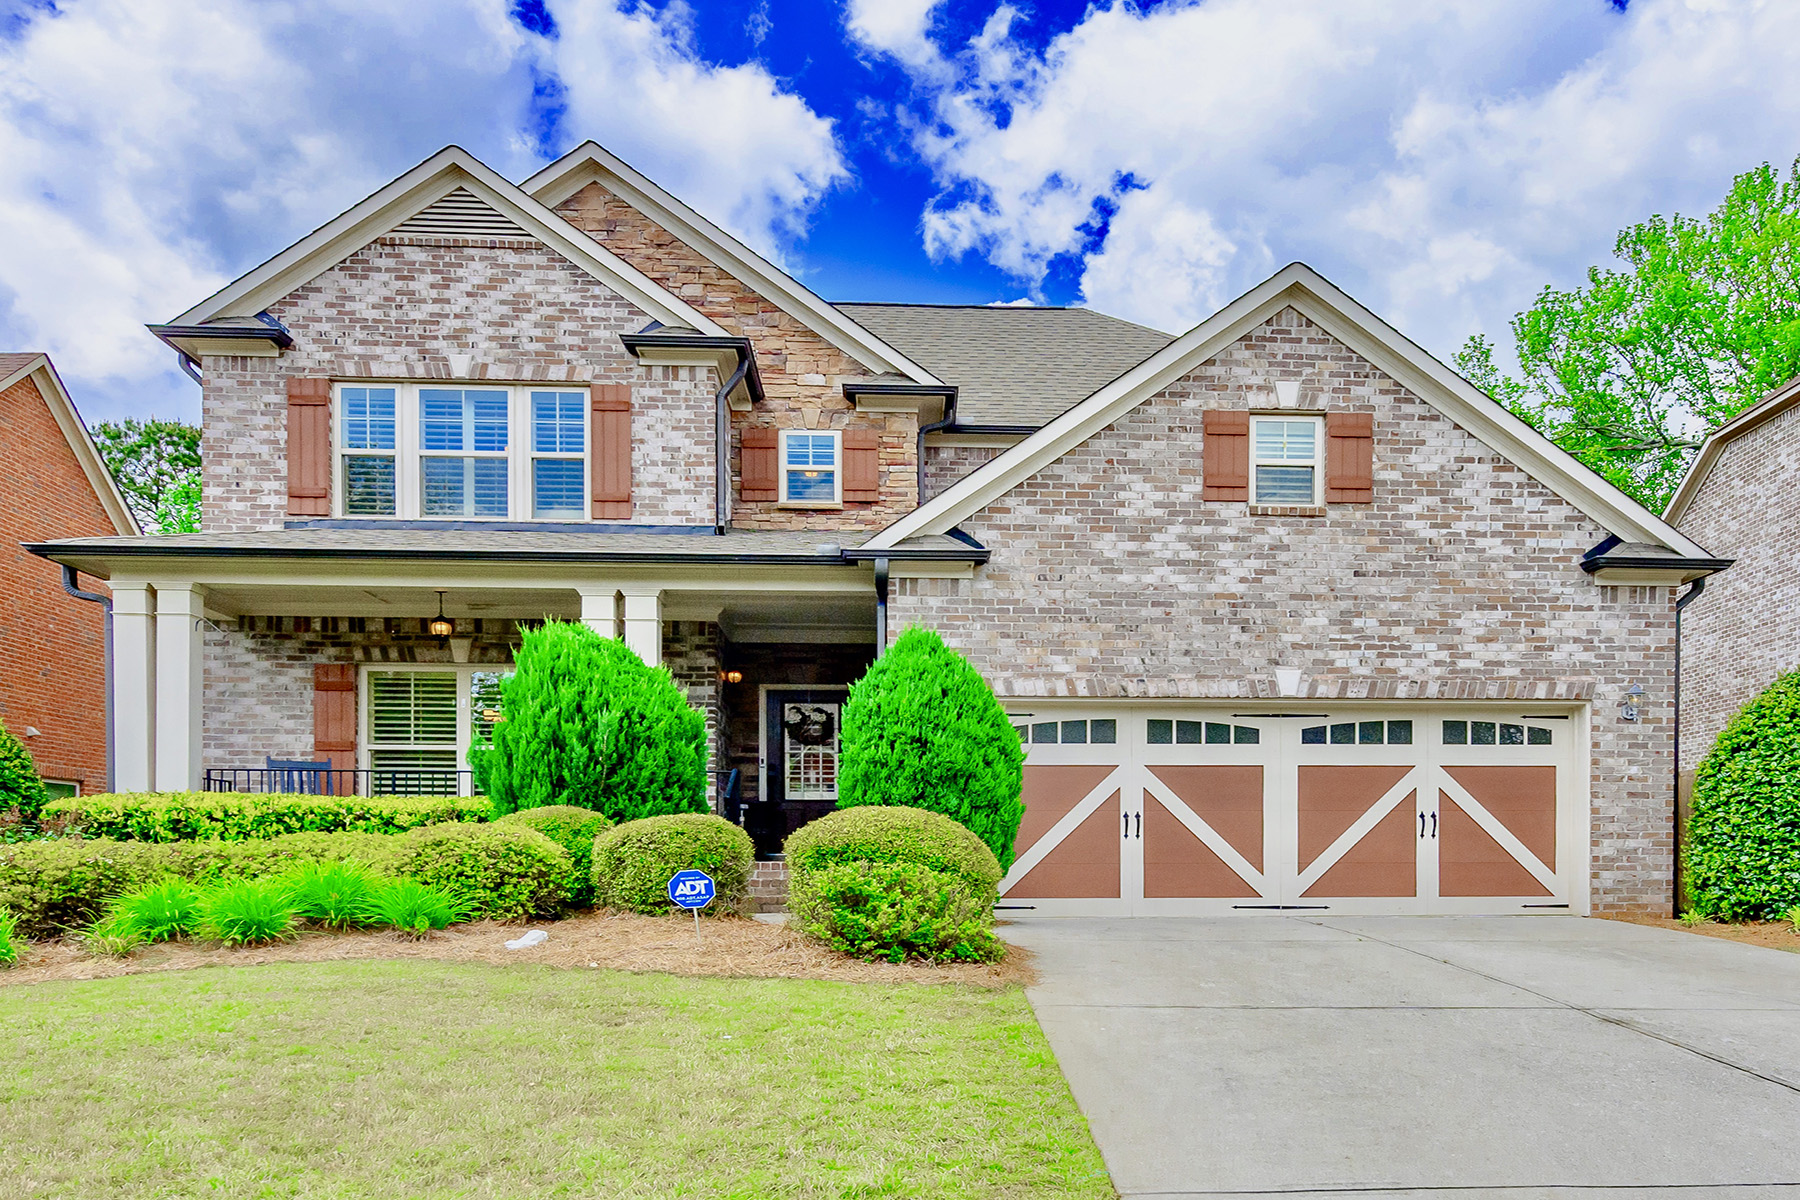 Single Family Homes for Sale at Picture Perfect Gated Craftsman Home in Top School District 3170 Stonecrest Dr Cumming, Georgia 30041 United States